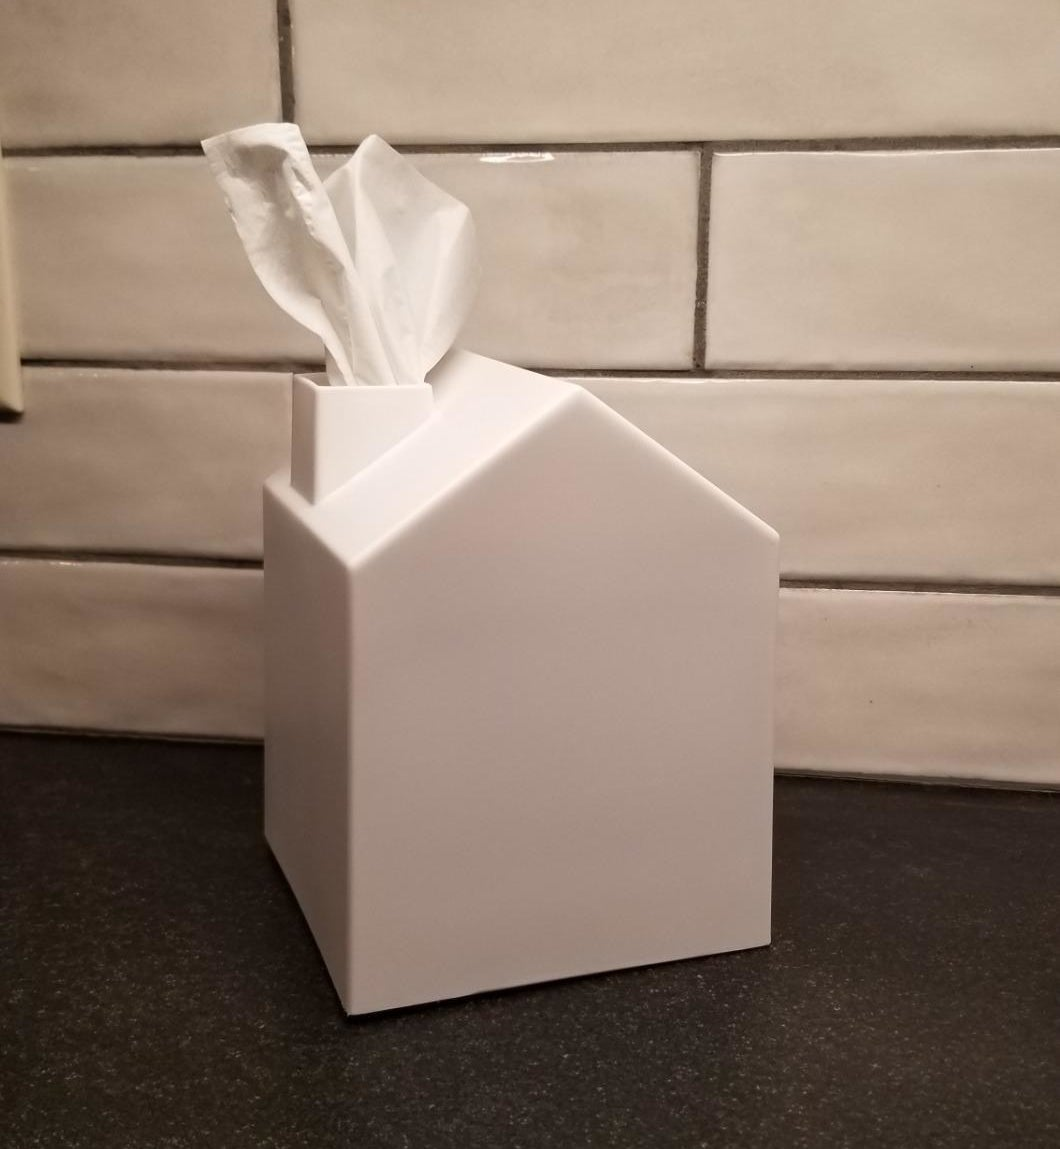 Reviewer image showing the white tissue box with a tissue coming out of the chimney